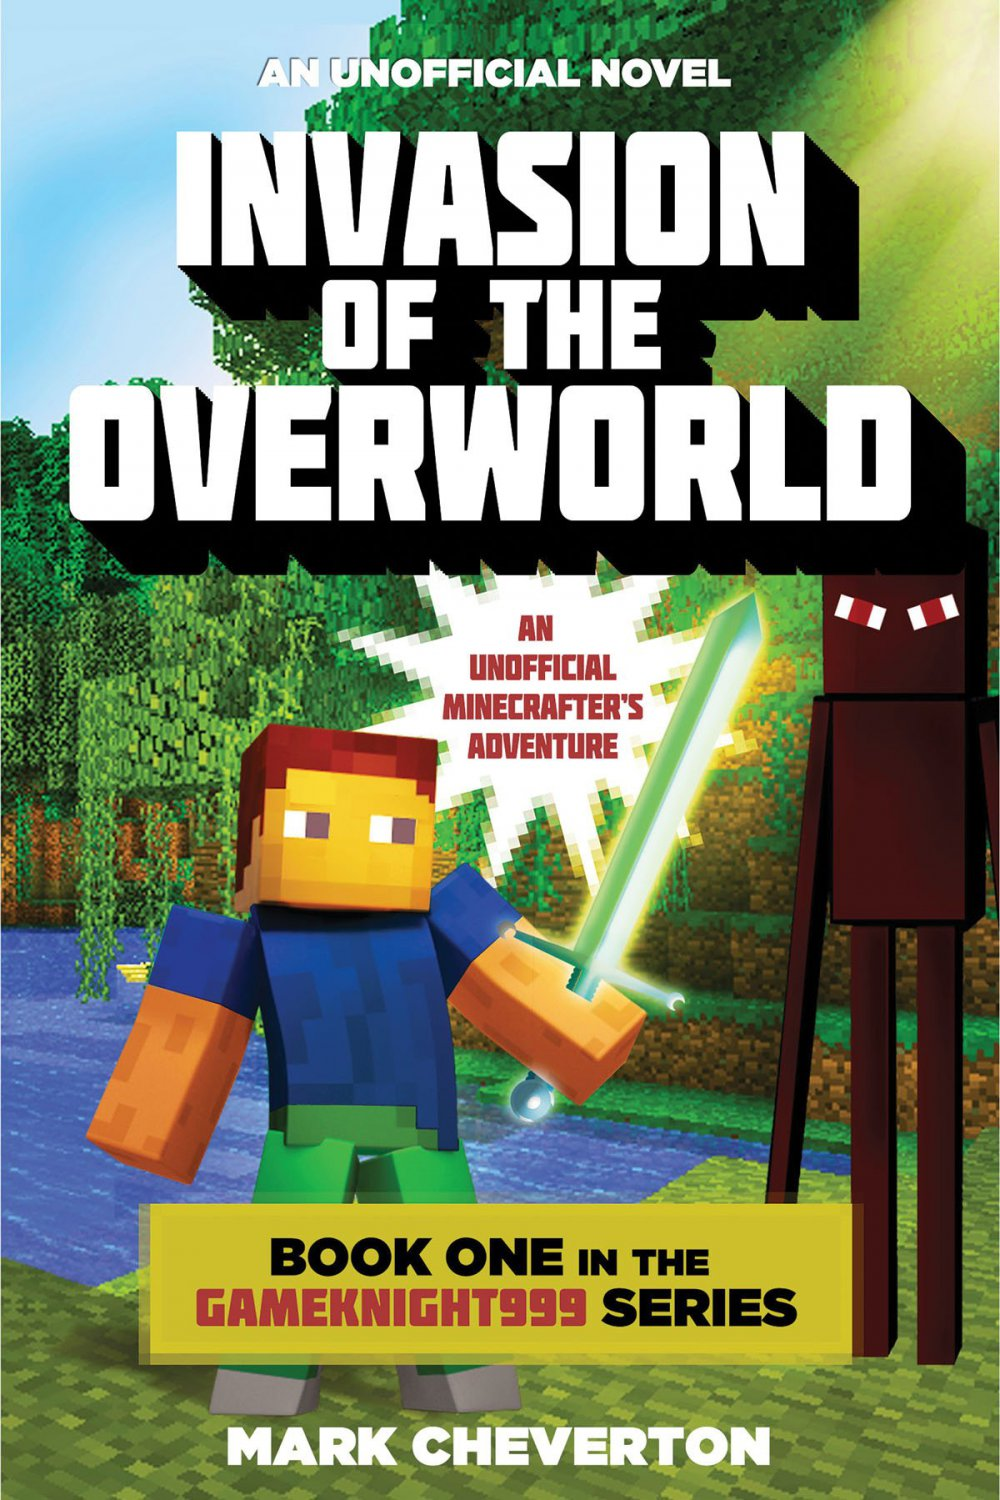 Invasion of the Overworld: Book One in the Gameknight999 Series.